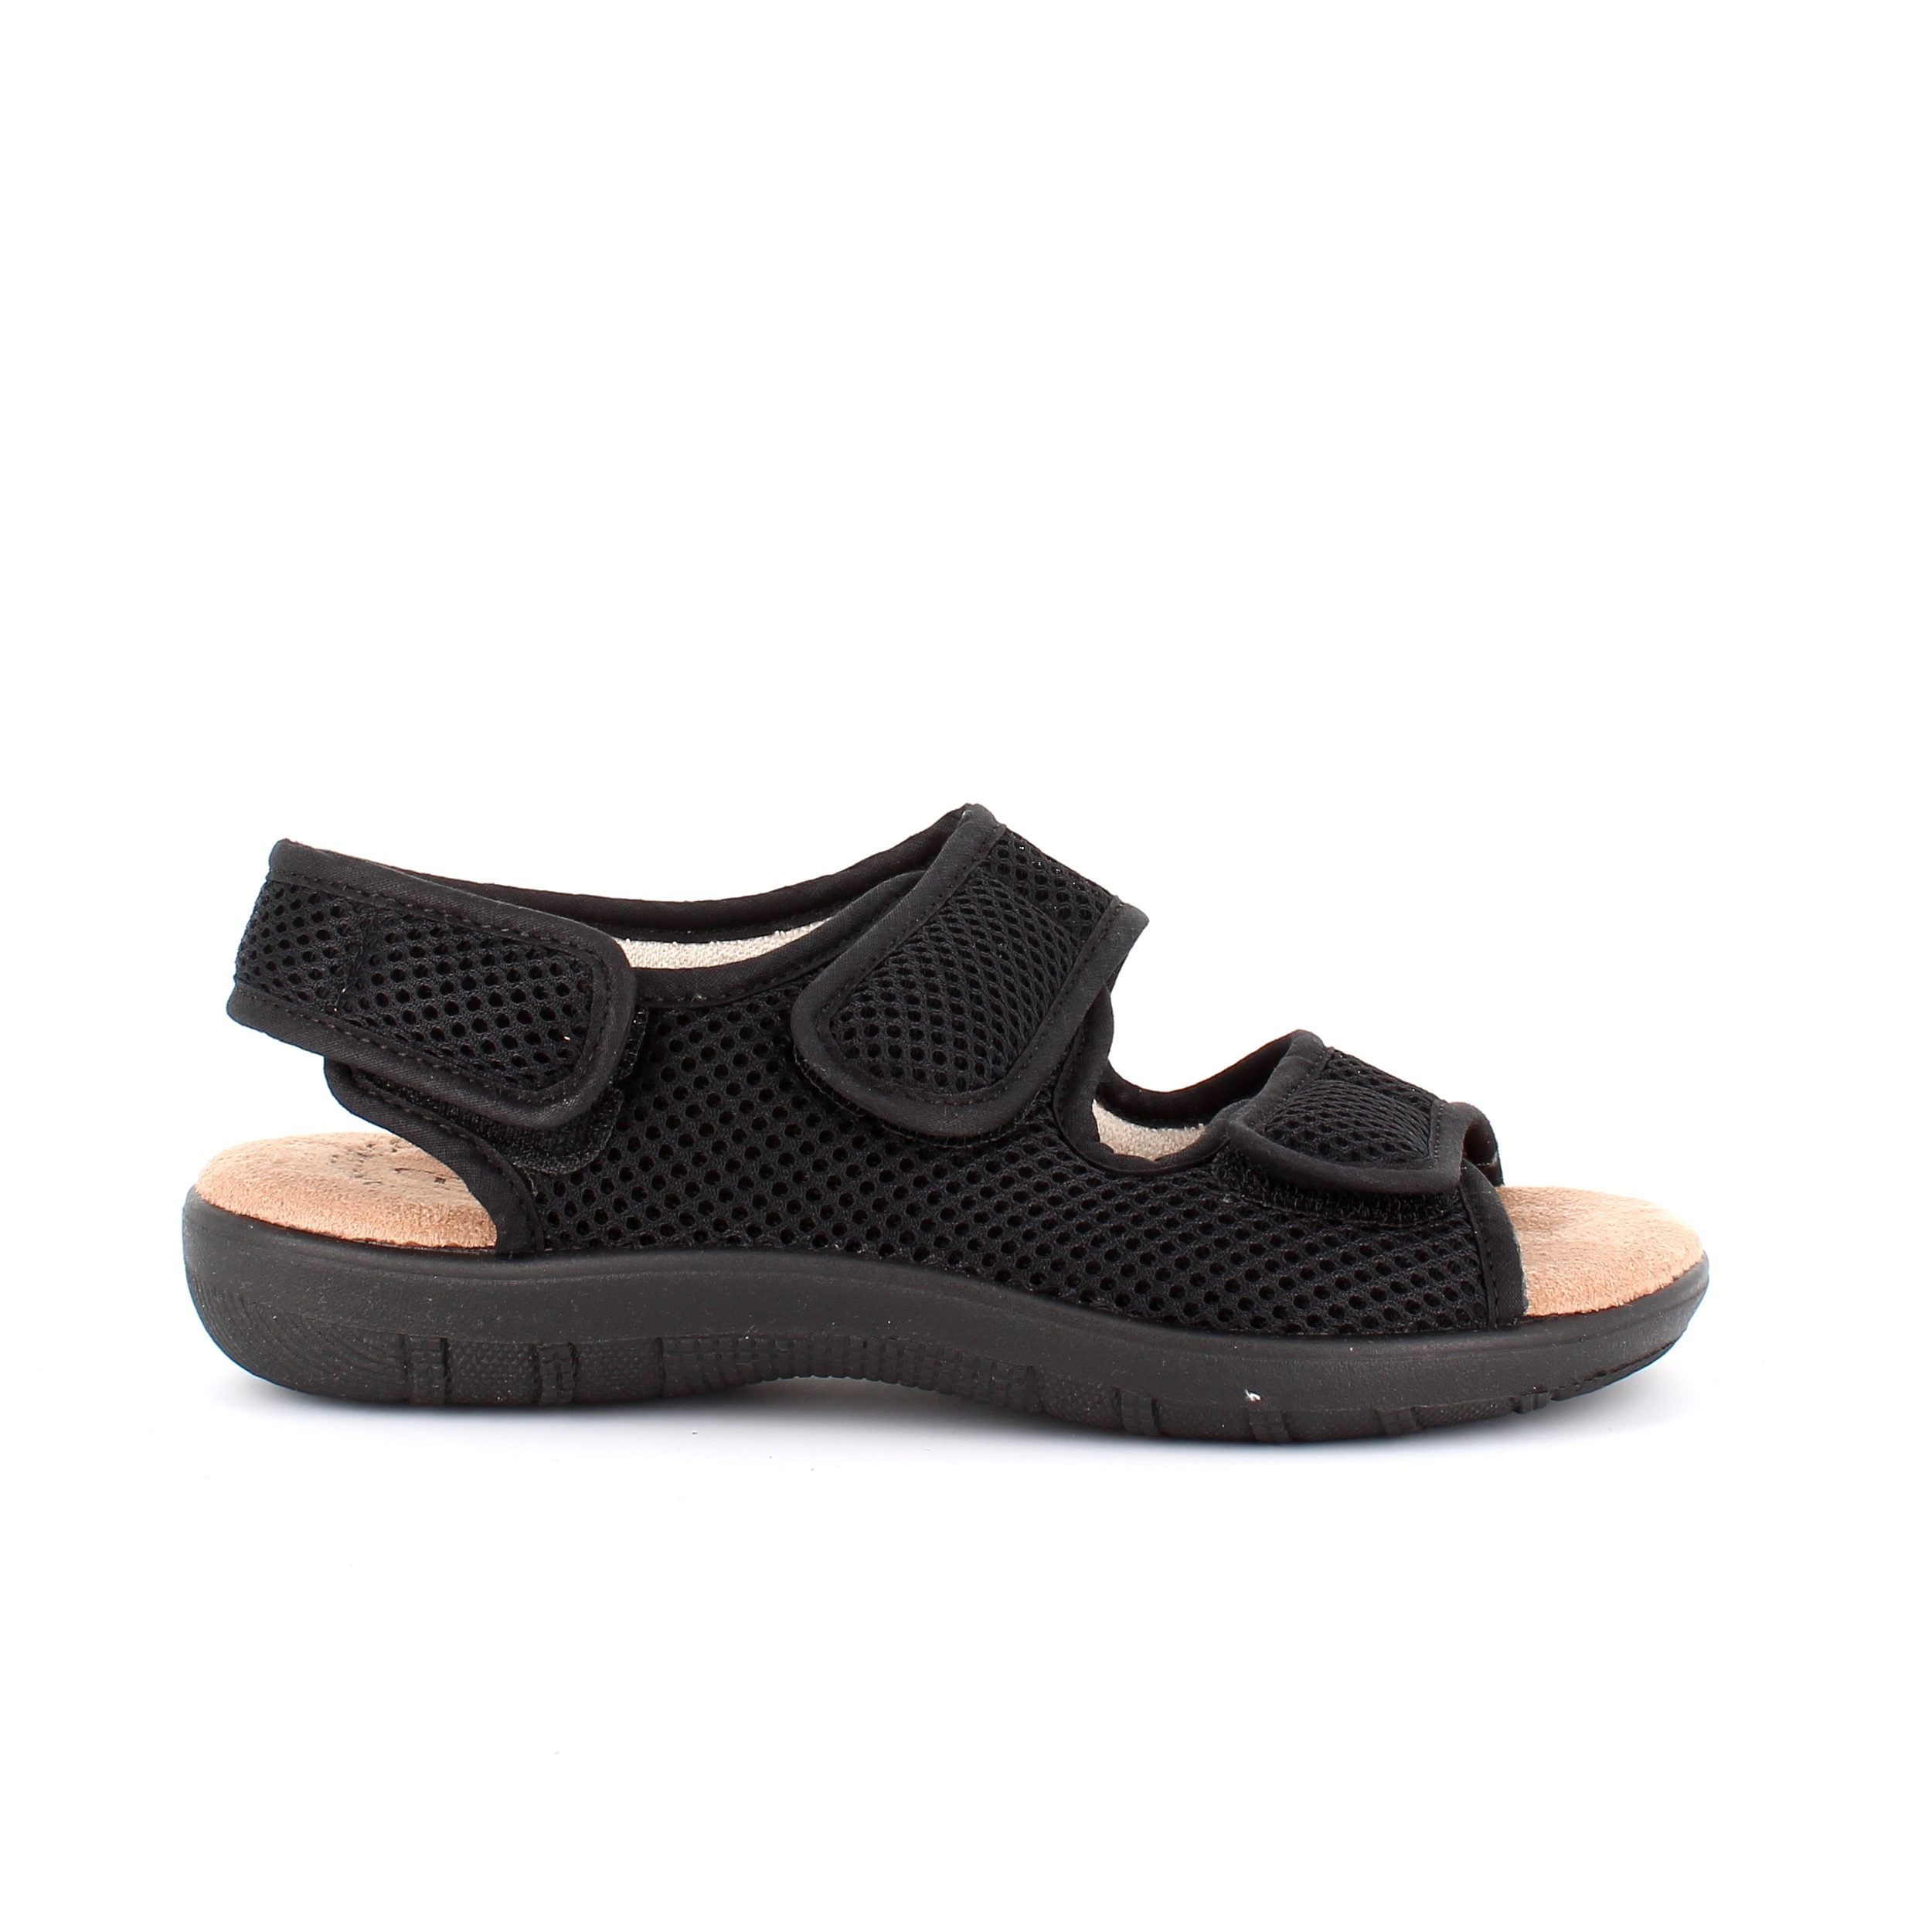 Image of   Anatomisk soft sandal - 37